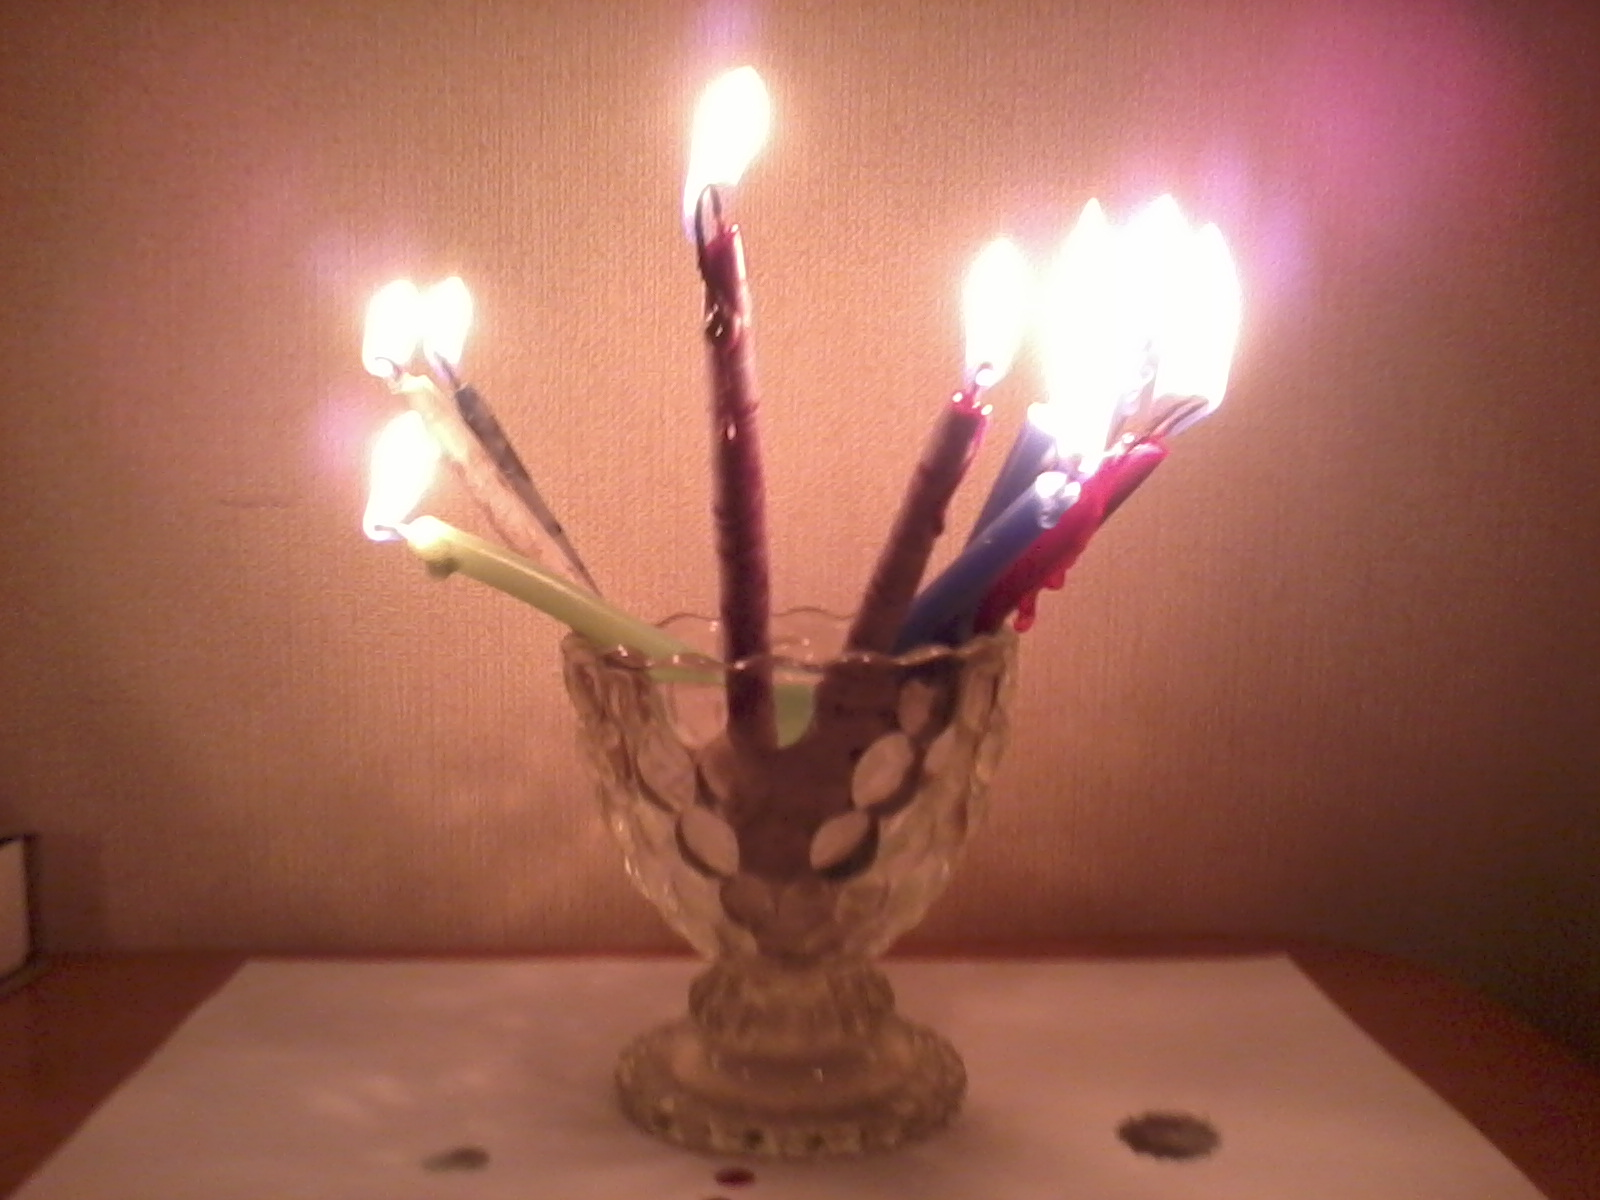 Can't find my menorah!?